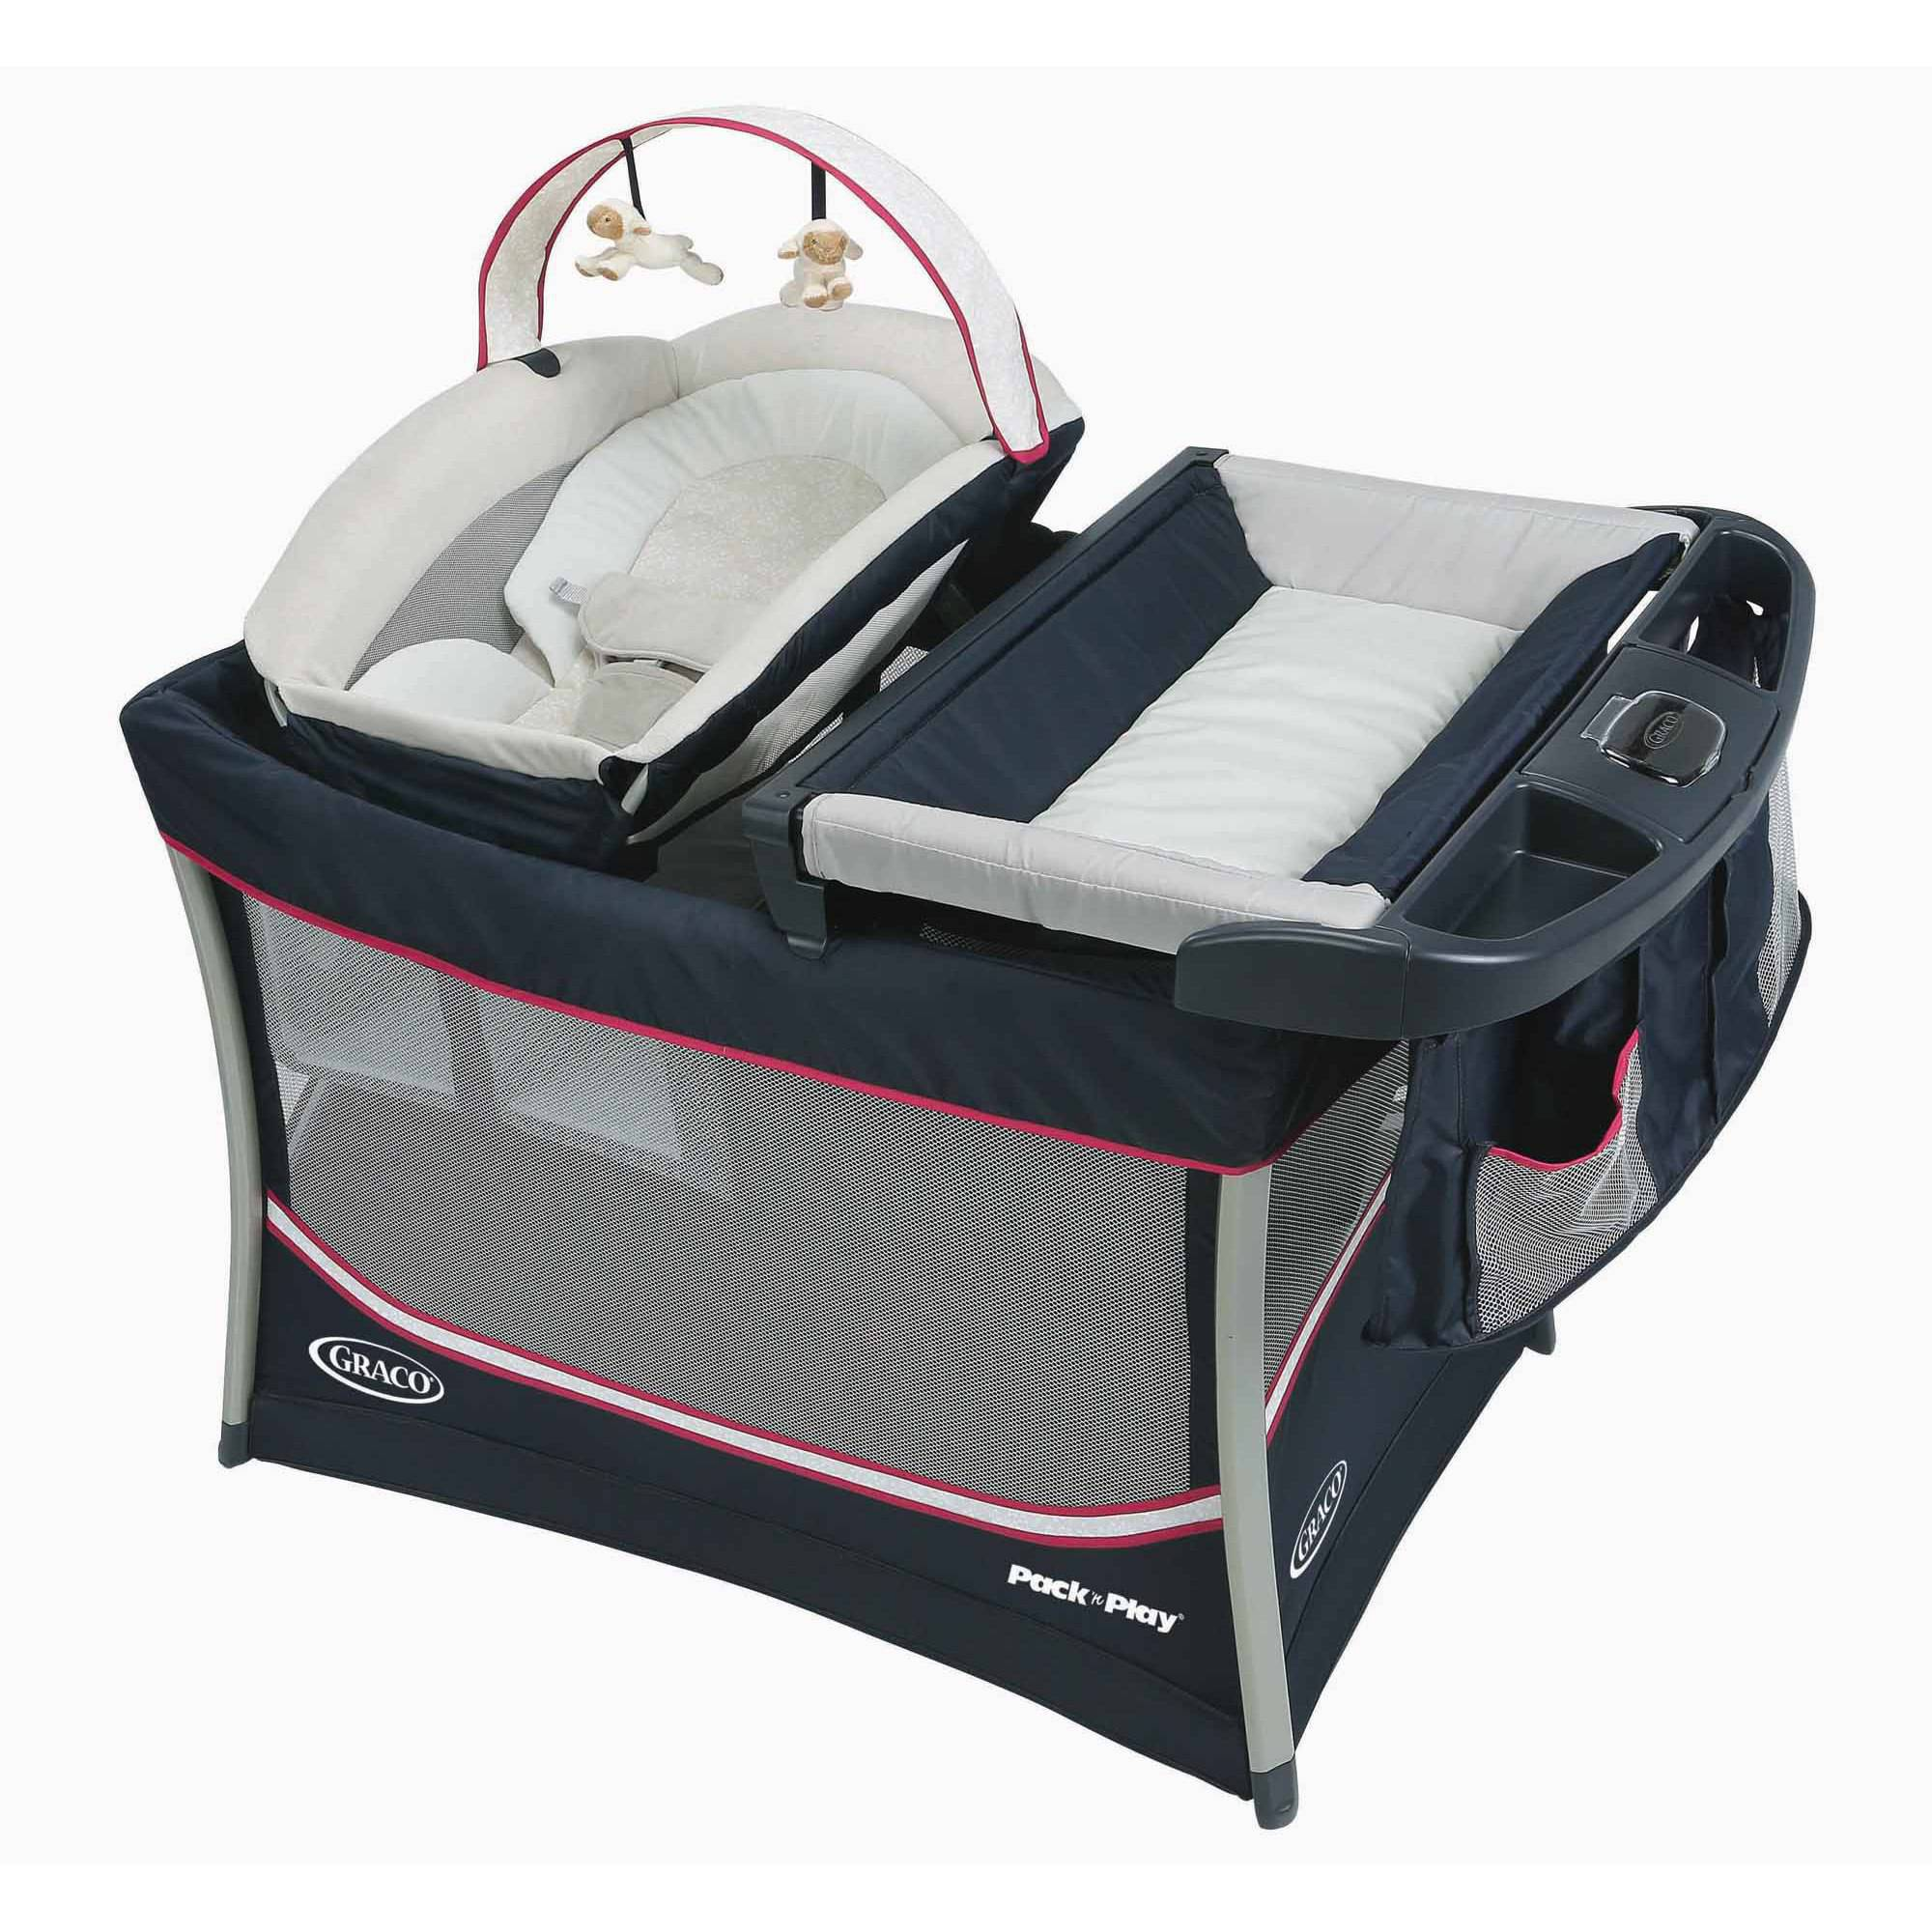 Graco Pack 'n Play Play Pen Everest Baby Play Pen, Ayla by Graco